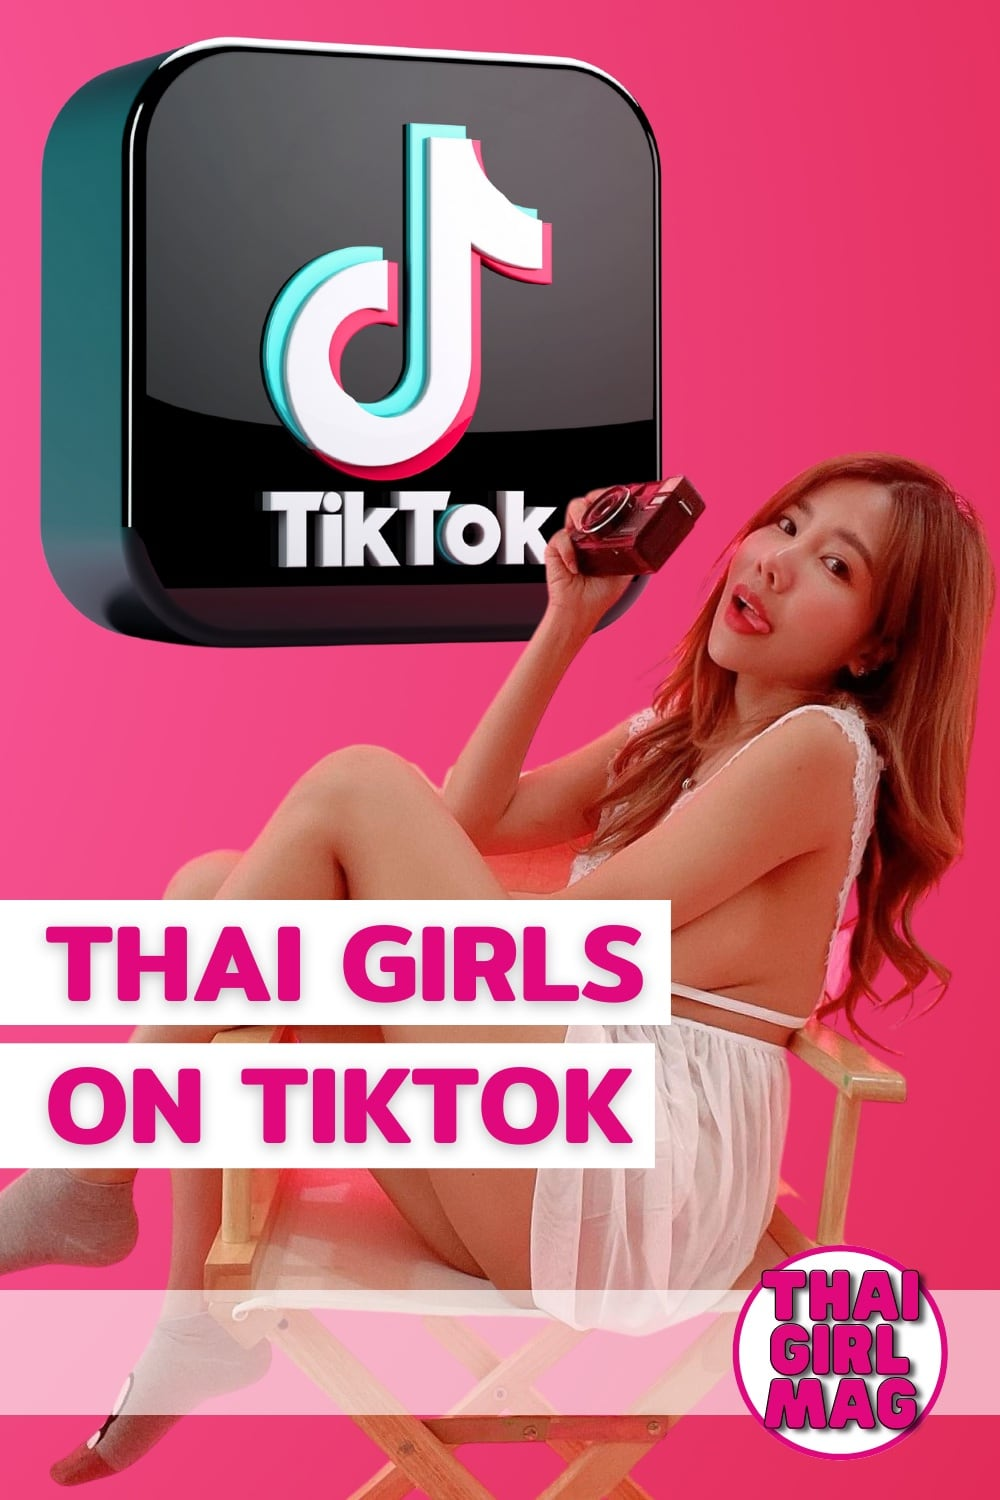 poster for the Thai Girls on Tik Tok page by Thai Girl Mag